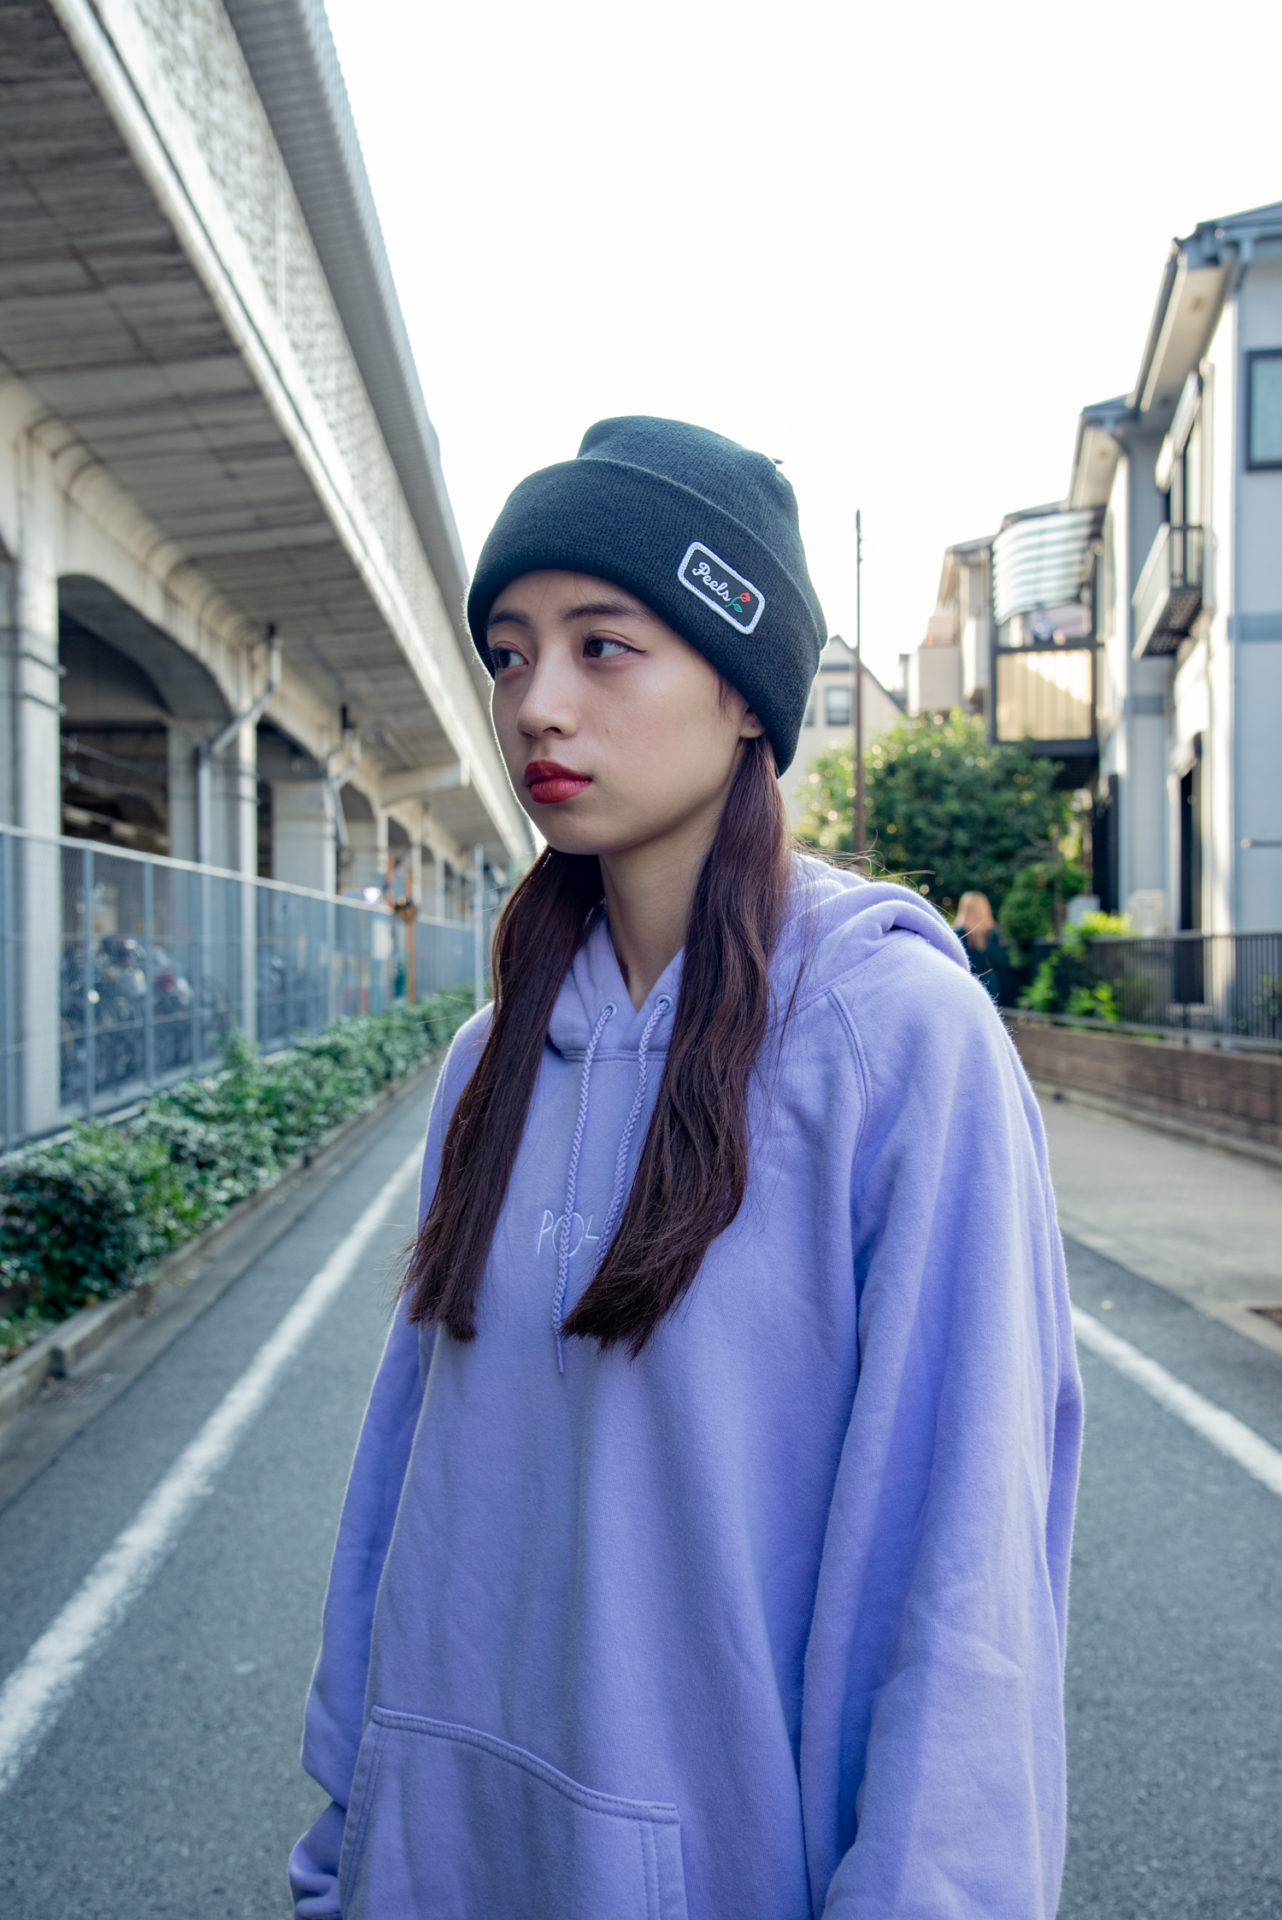 Girls On The Street Nov. 2019 – 彩音 vol. 1 –